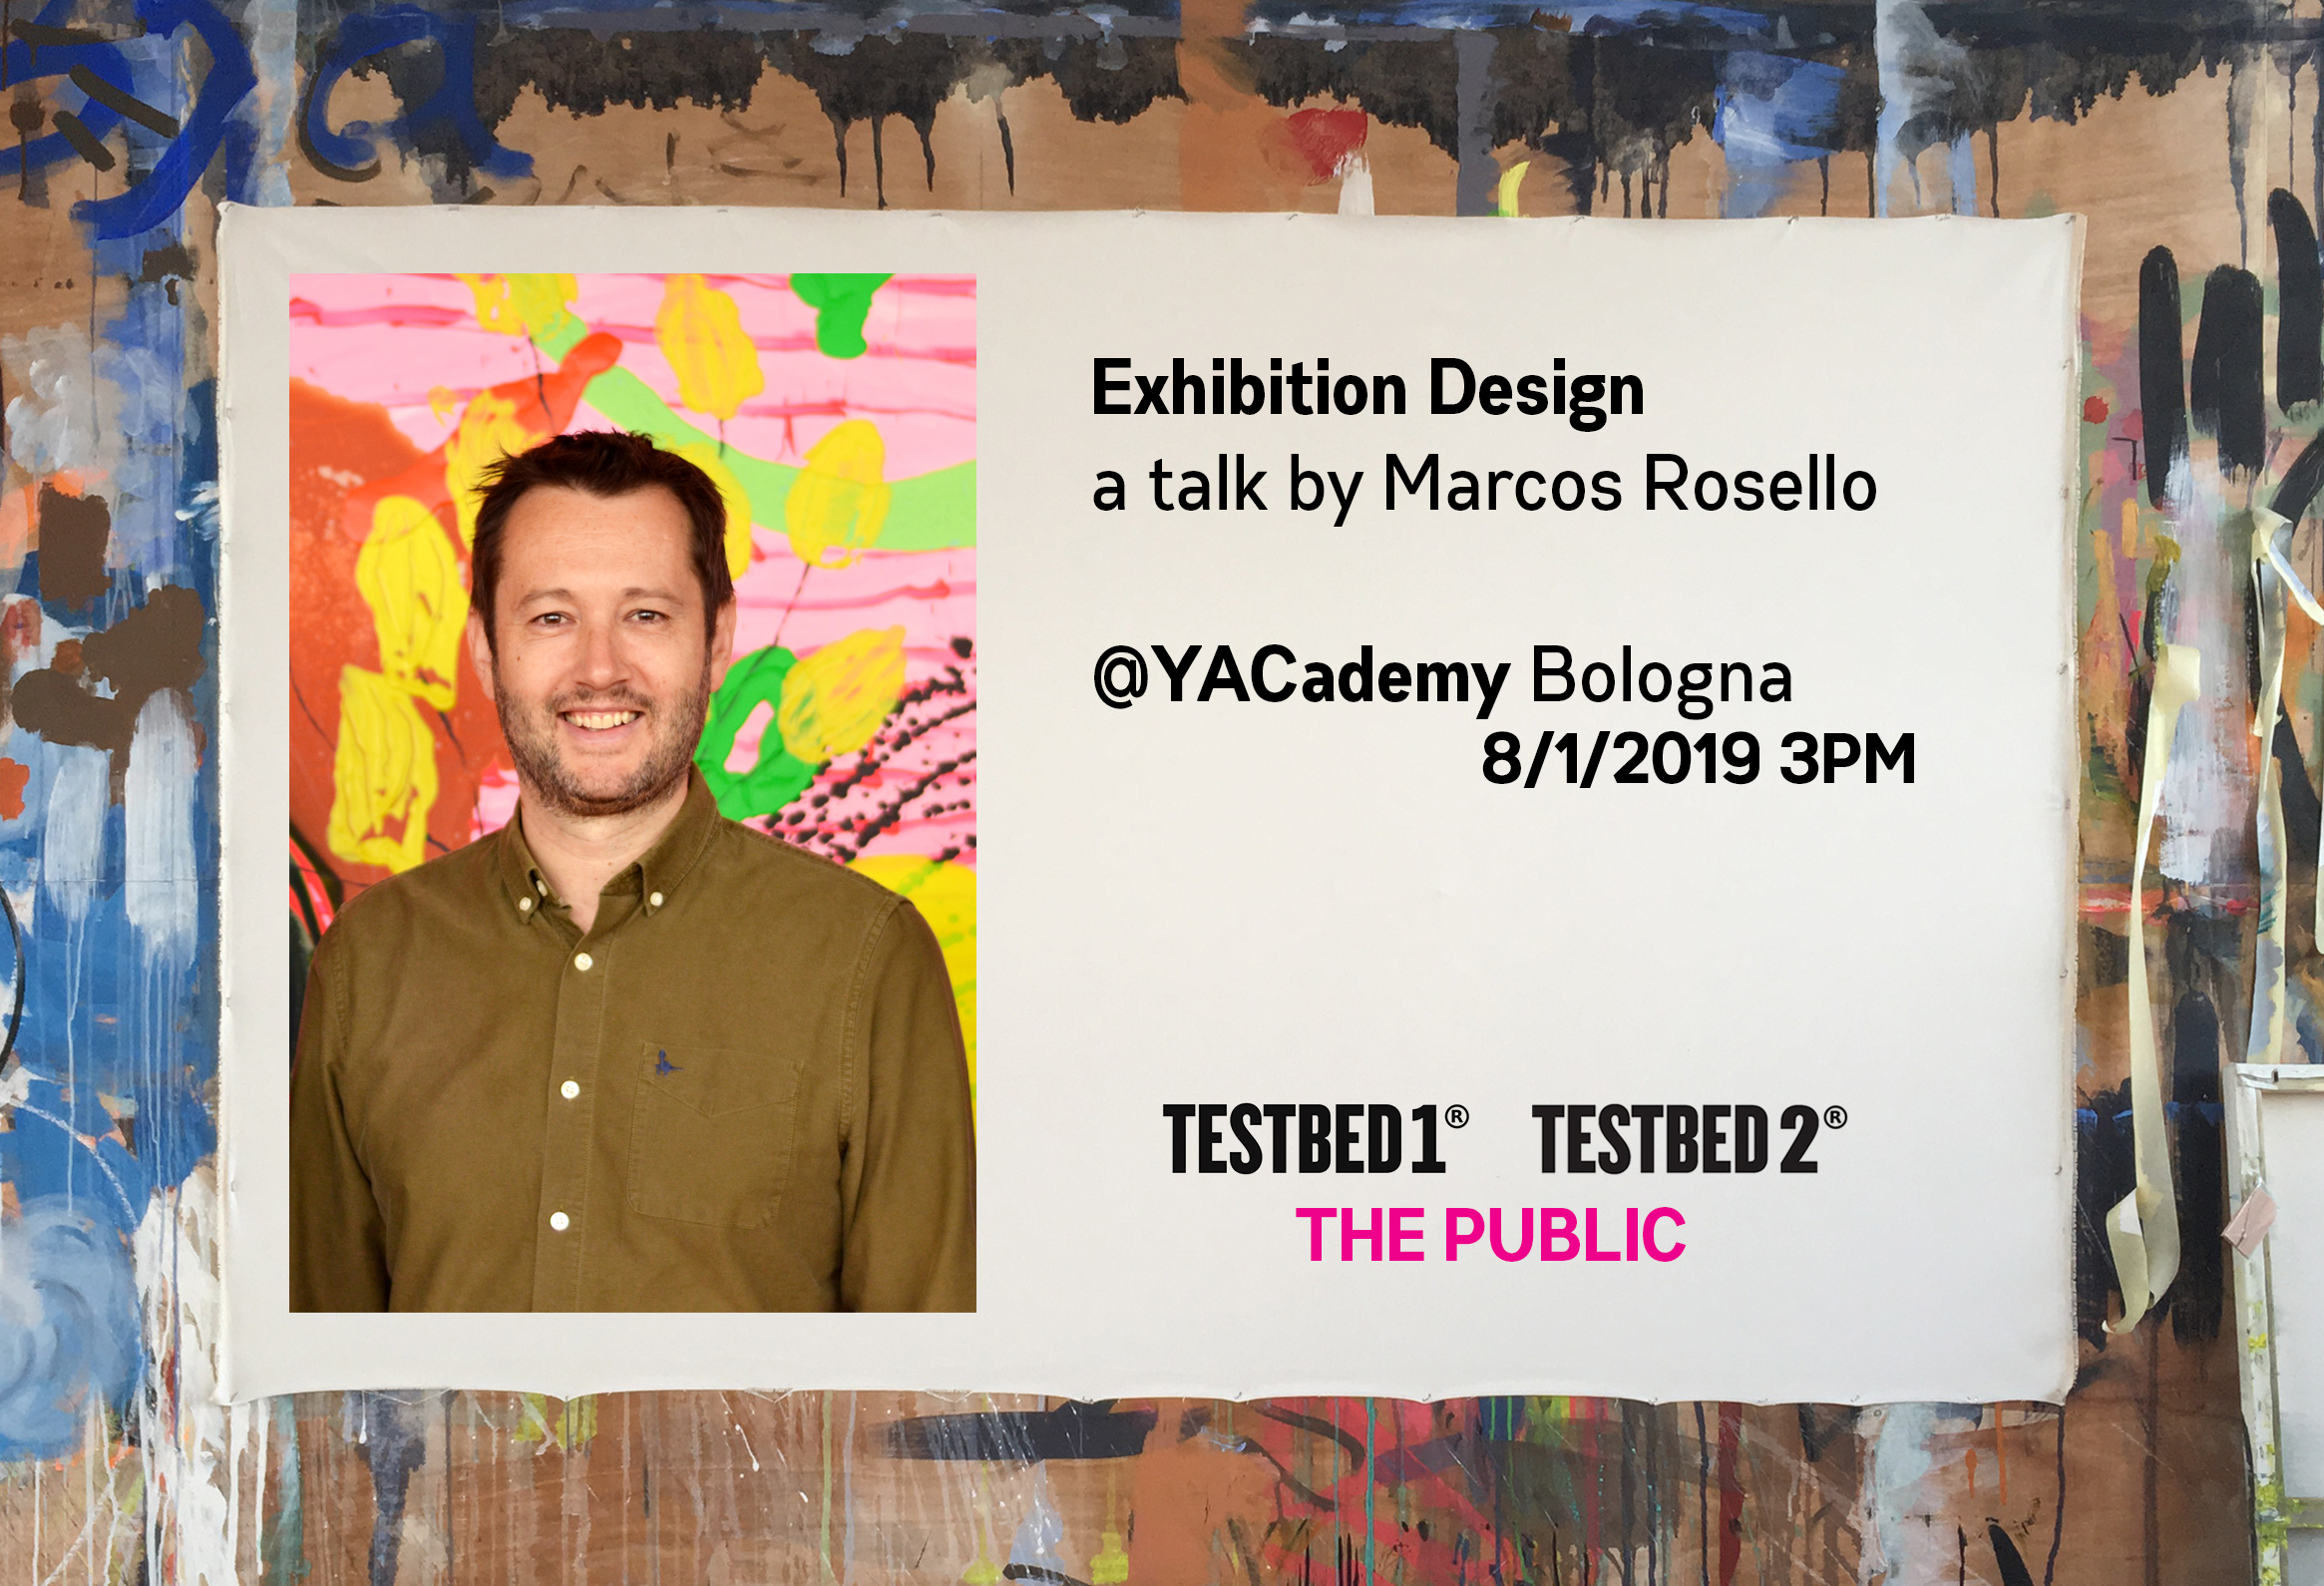 Architecture News - Marcos Rosello talks at YACademy on Exhibition Design